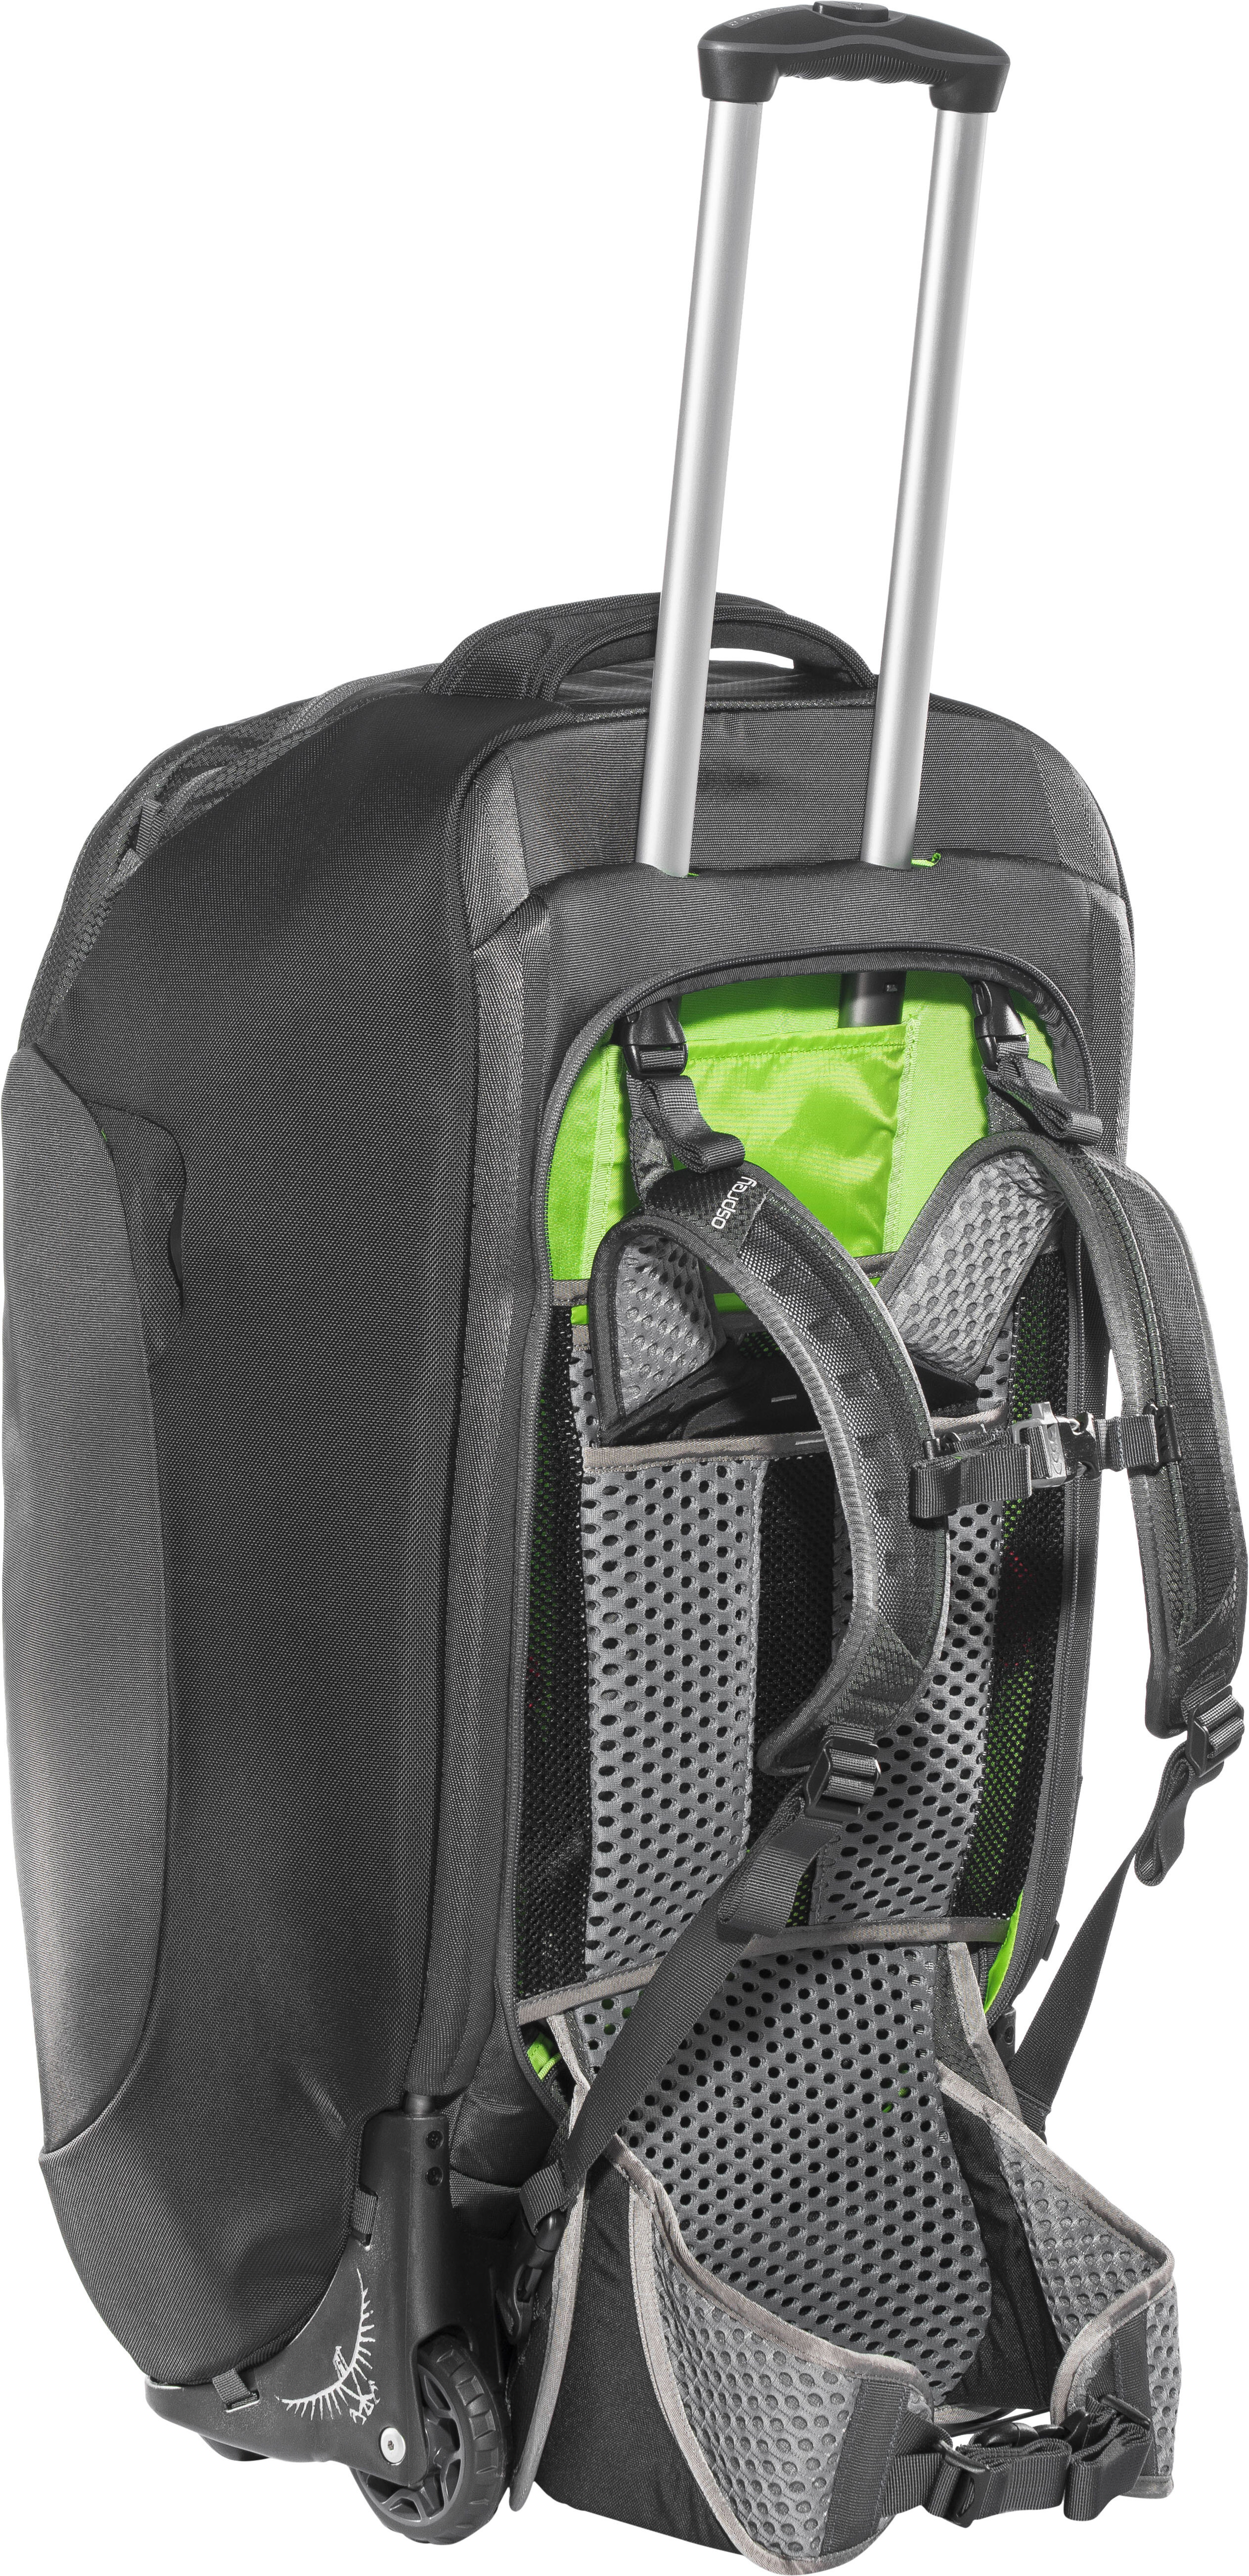 Osprey Sojourn 60 Travel Luggage black at Addnature.co.uk 5cb89969ce